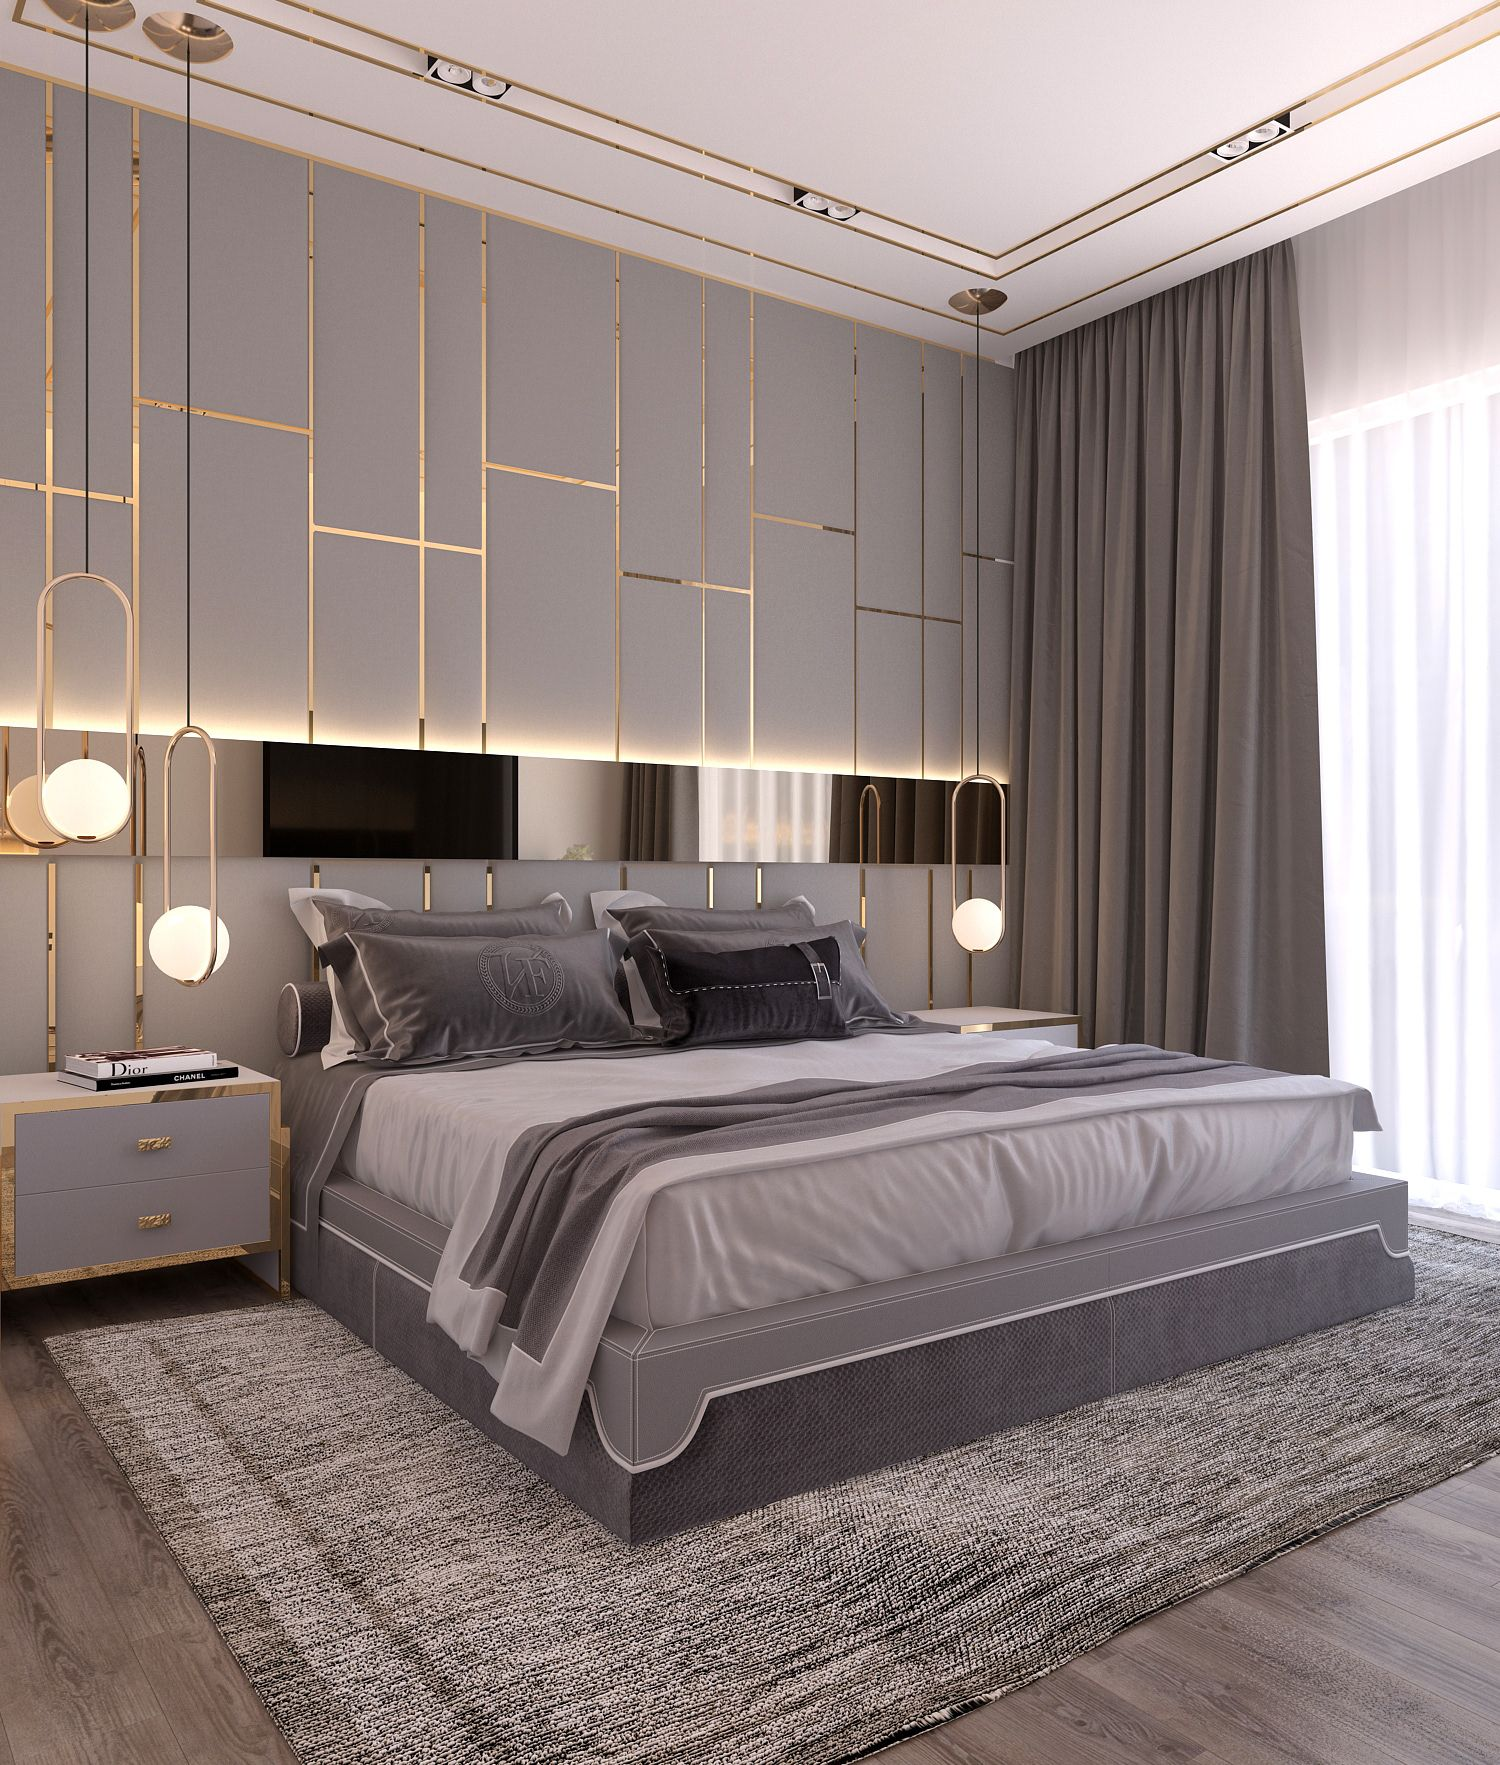 modern bedroom designs 2019 Modern style bedroom *Dubai project on Behance in 2019